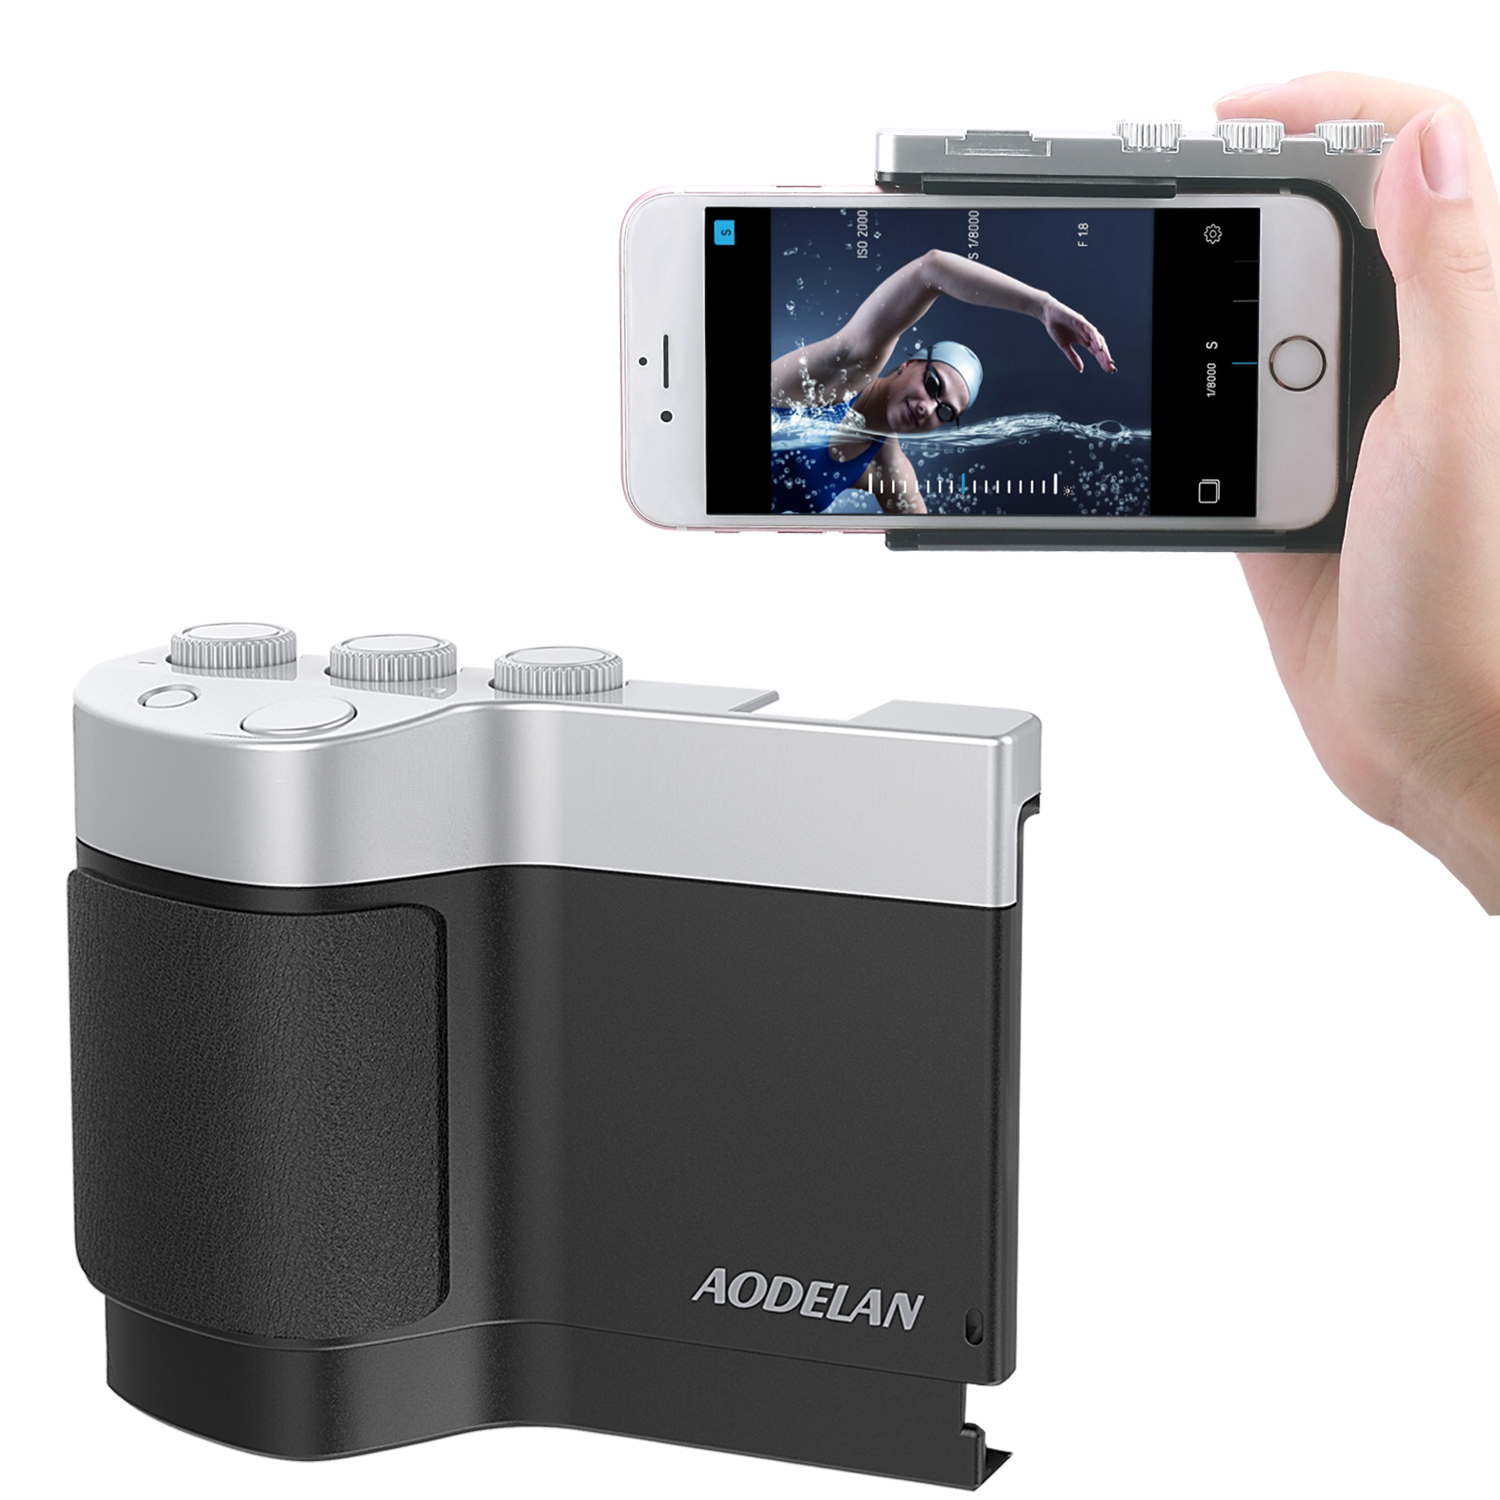 Aodelan Smartphone Camera Grip for iPhone